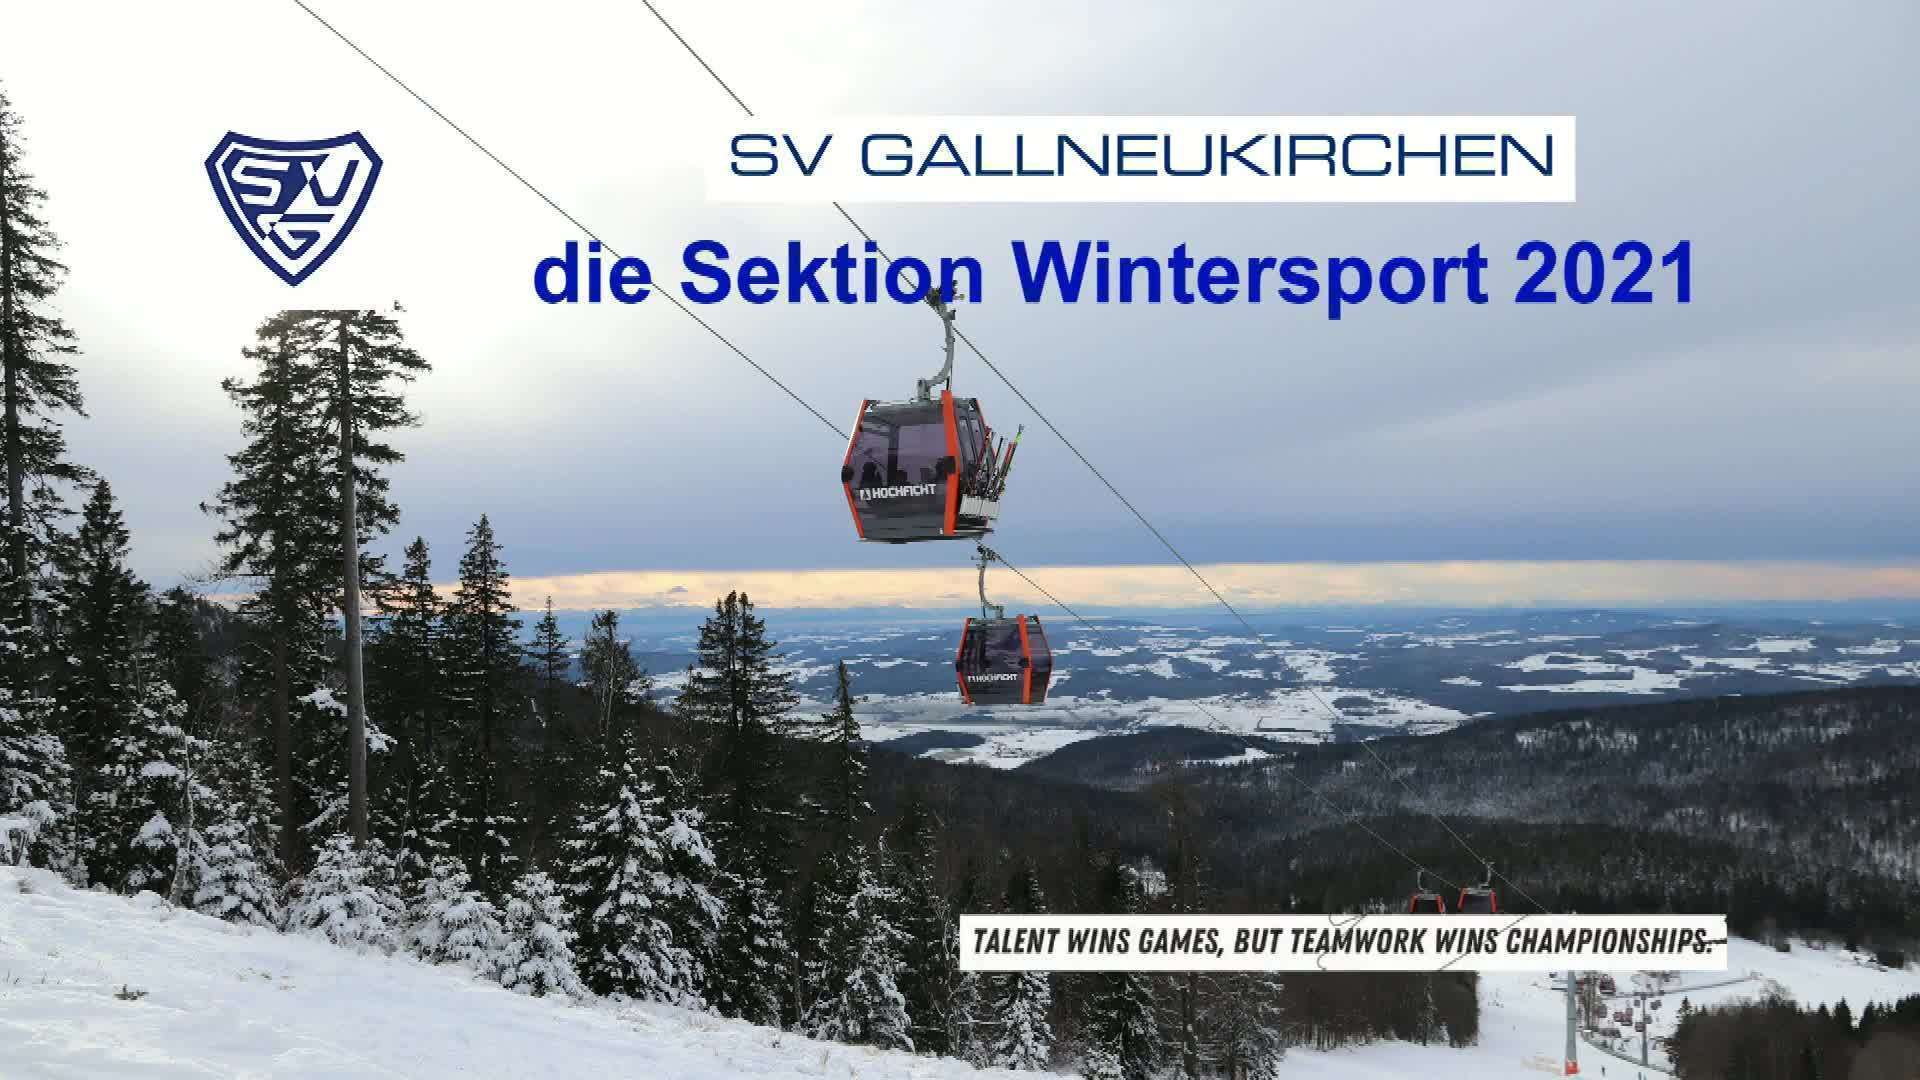 Die SVG Sektion Wintersport 2021